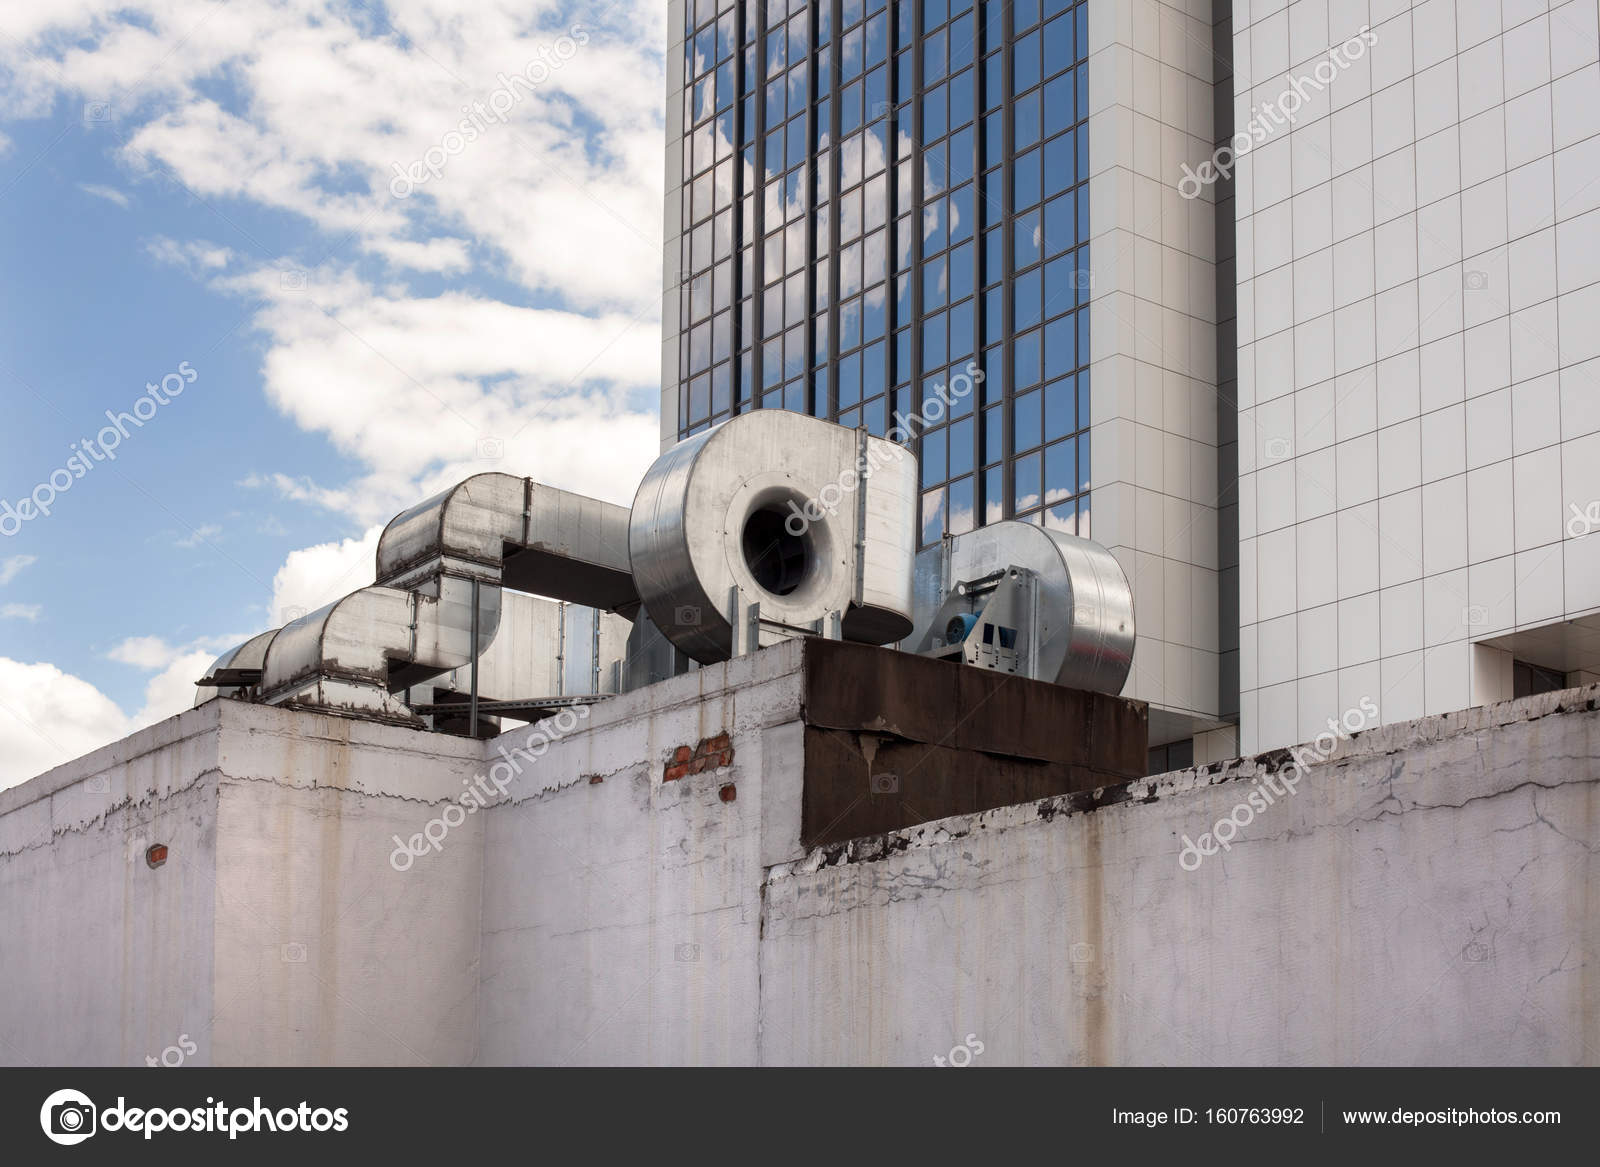 industrial air conditioning and ventilation systems. ventilation